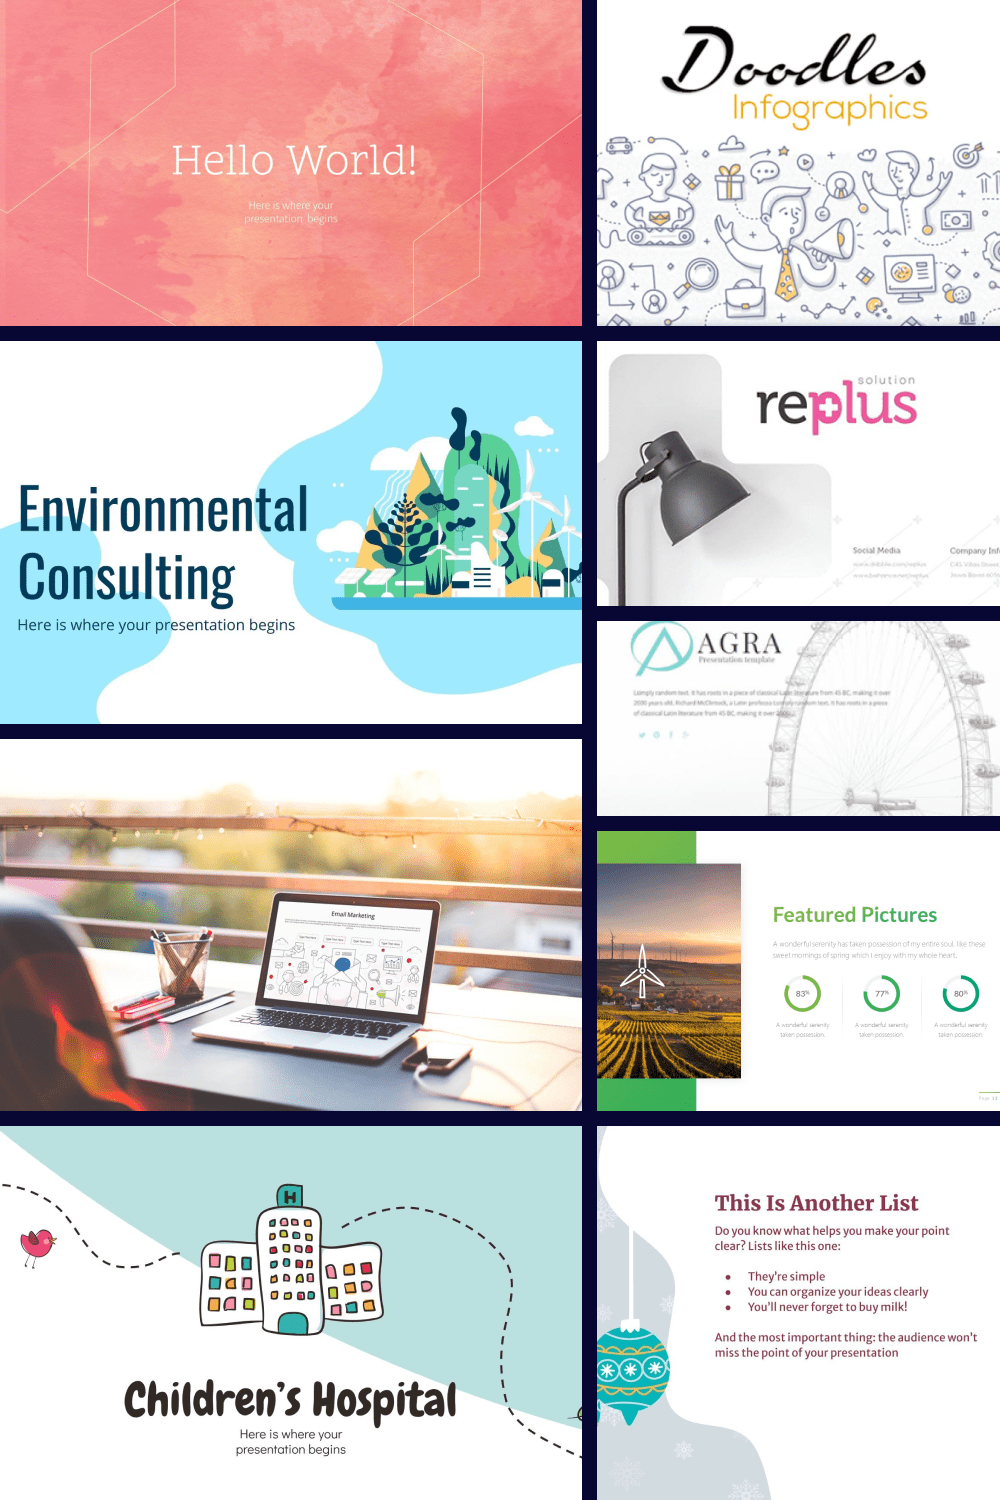 PowerPoint Presentation Templates collage for Pinterest.